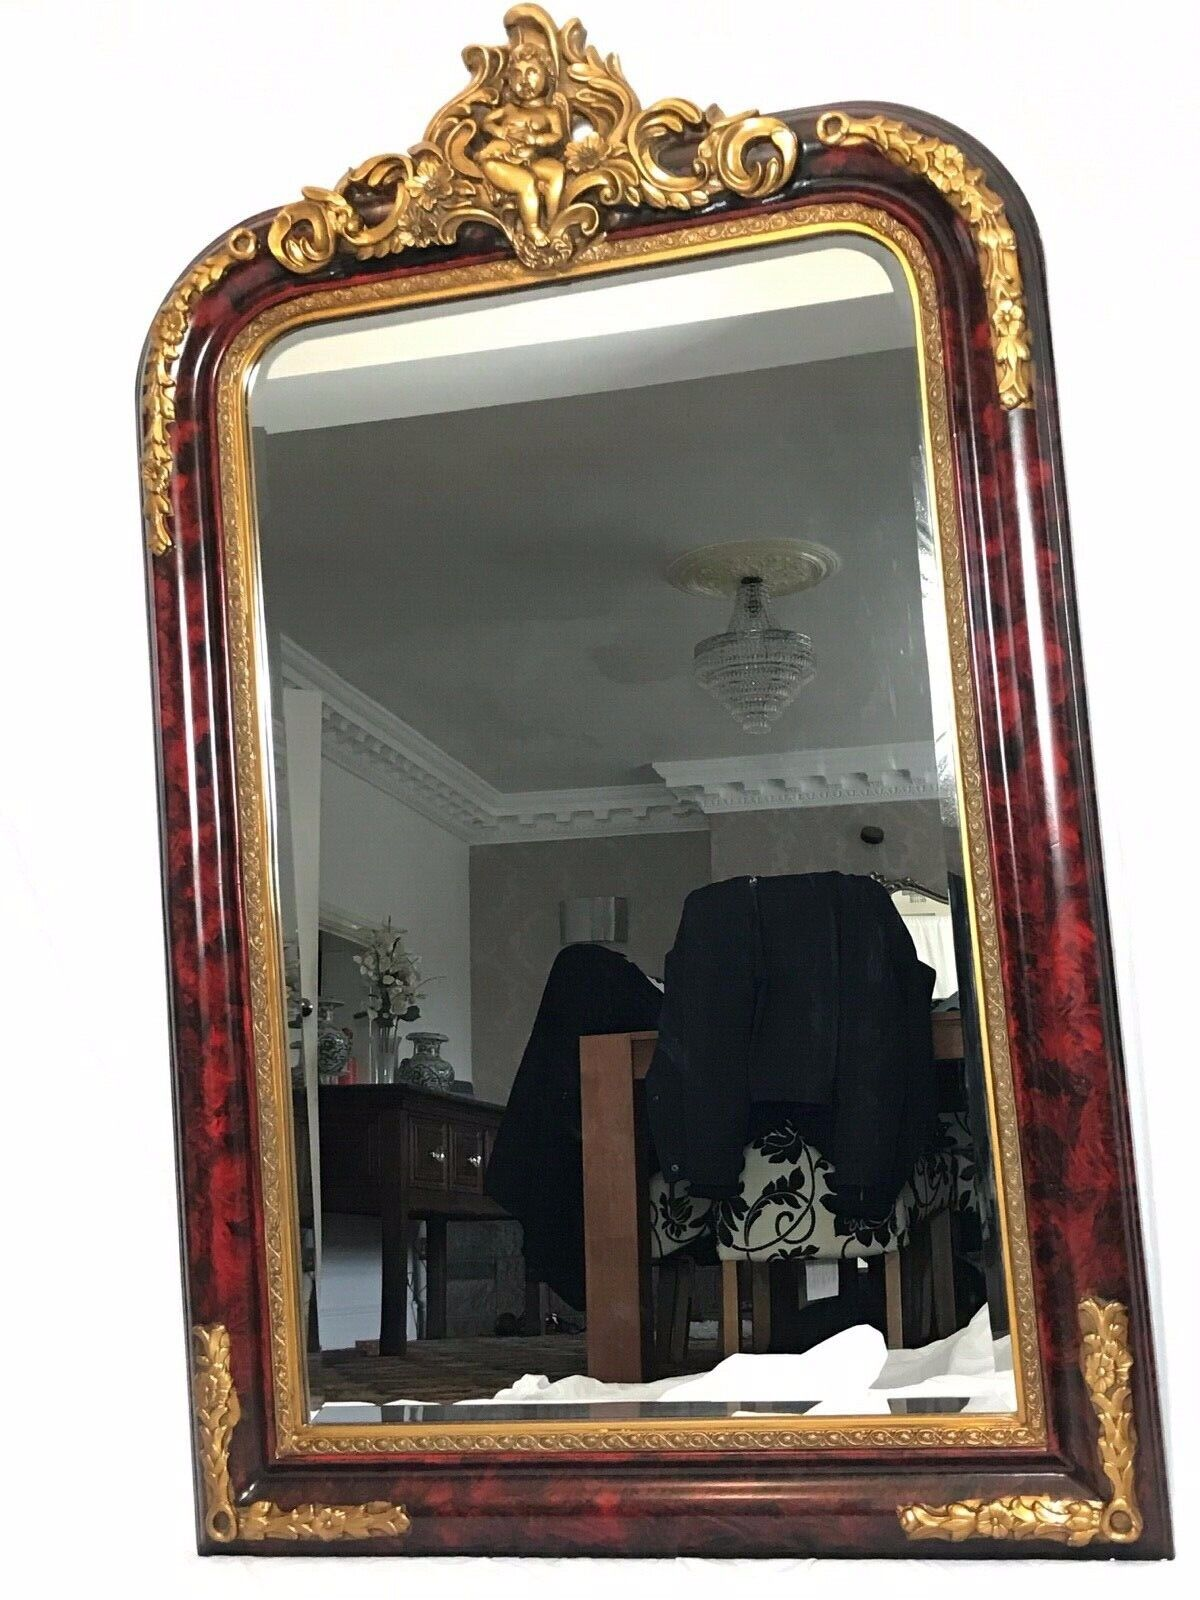 Large French Empire Boulle Style Gilt Cherub Acanthus Floral Pier Beveled Mirror